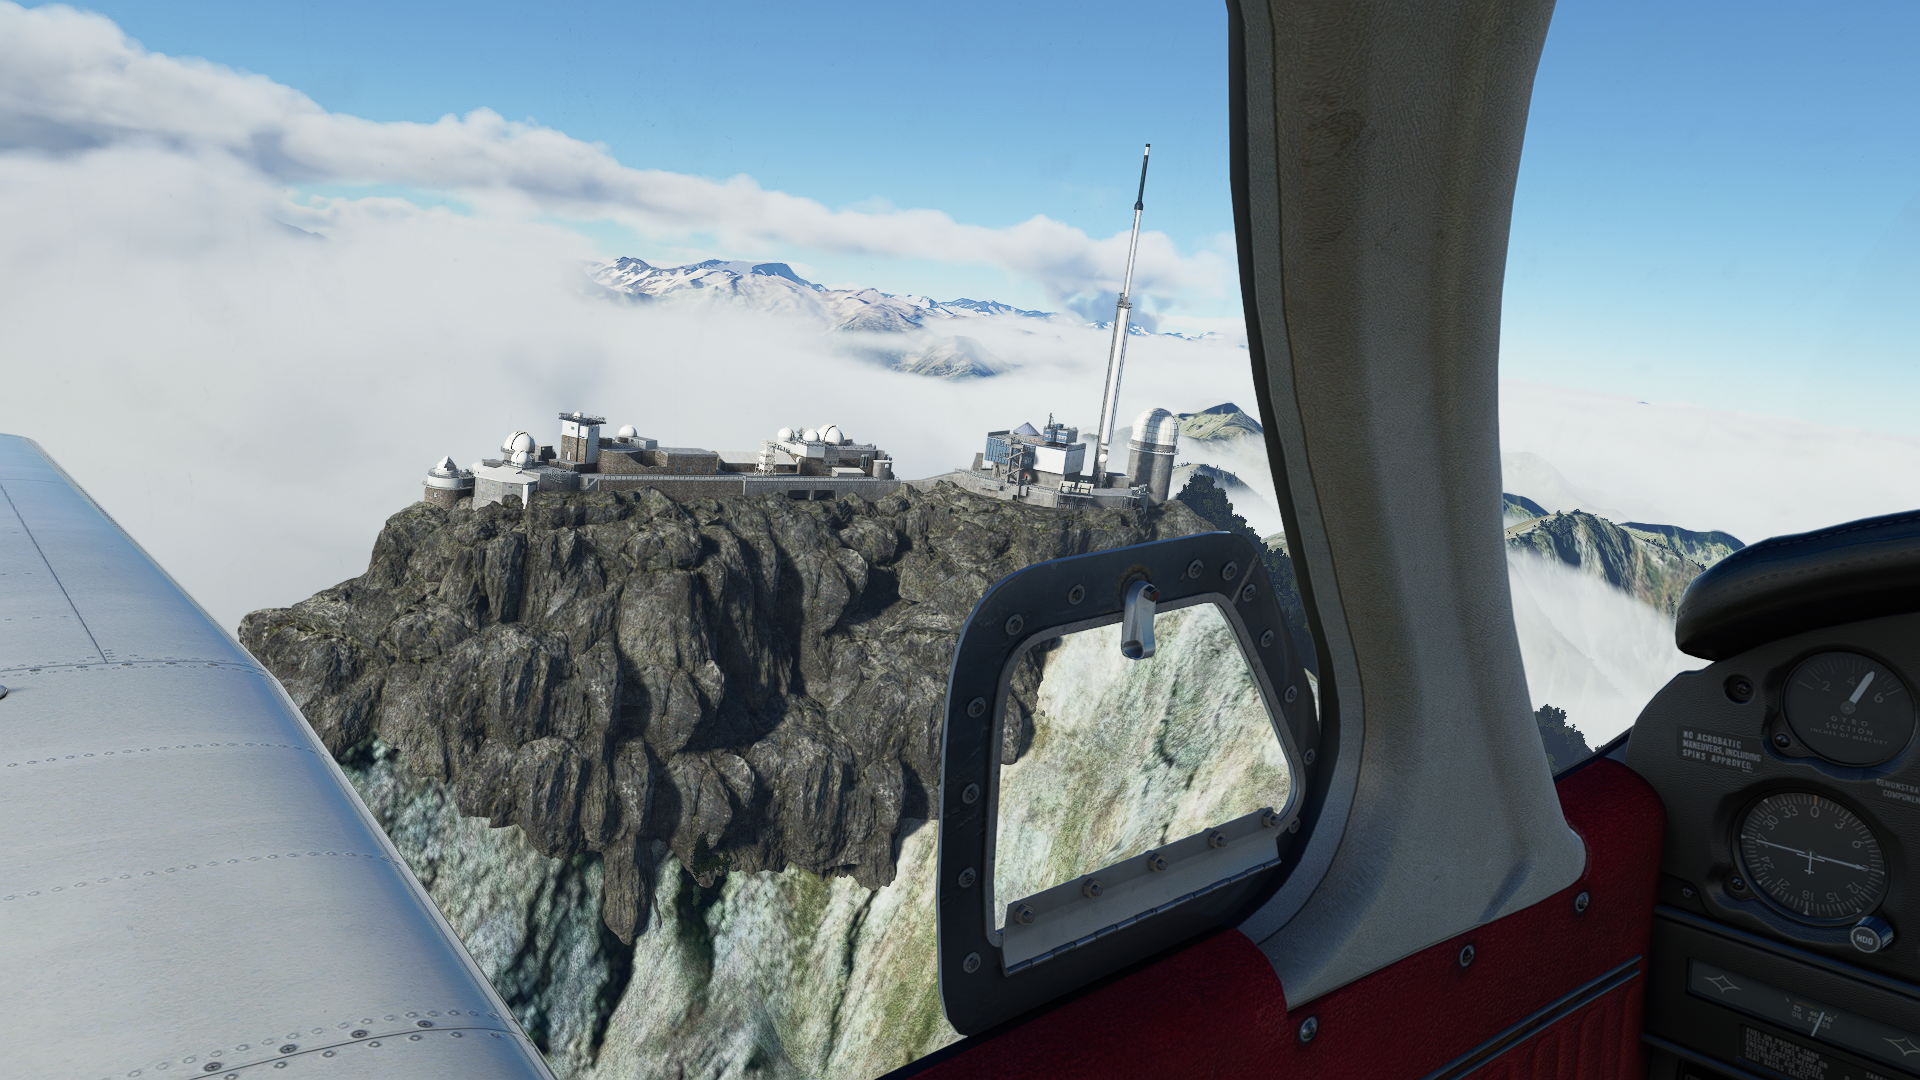 Microsoft_Flight_Simulator_14_04_2021_17